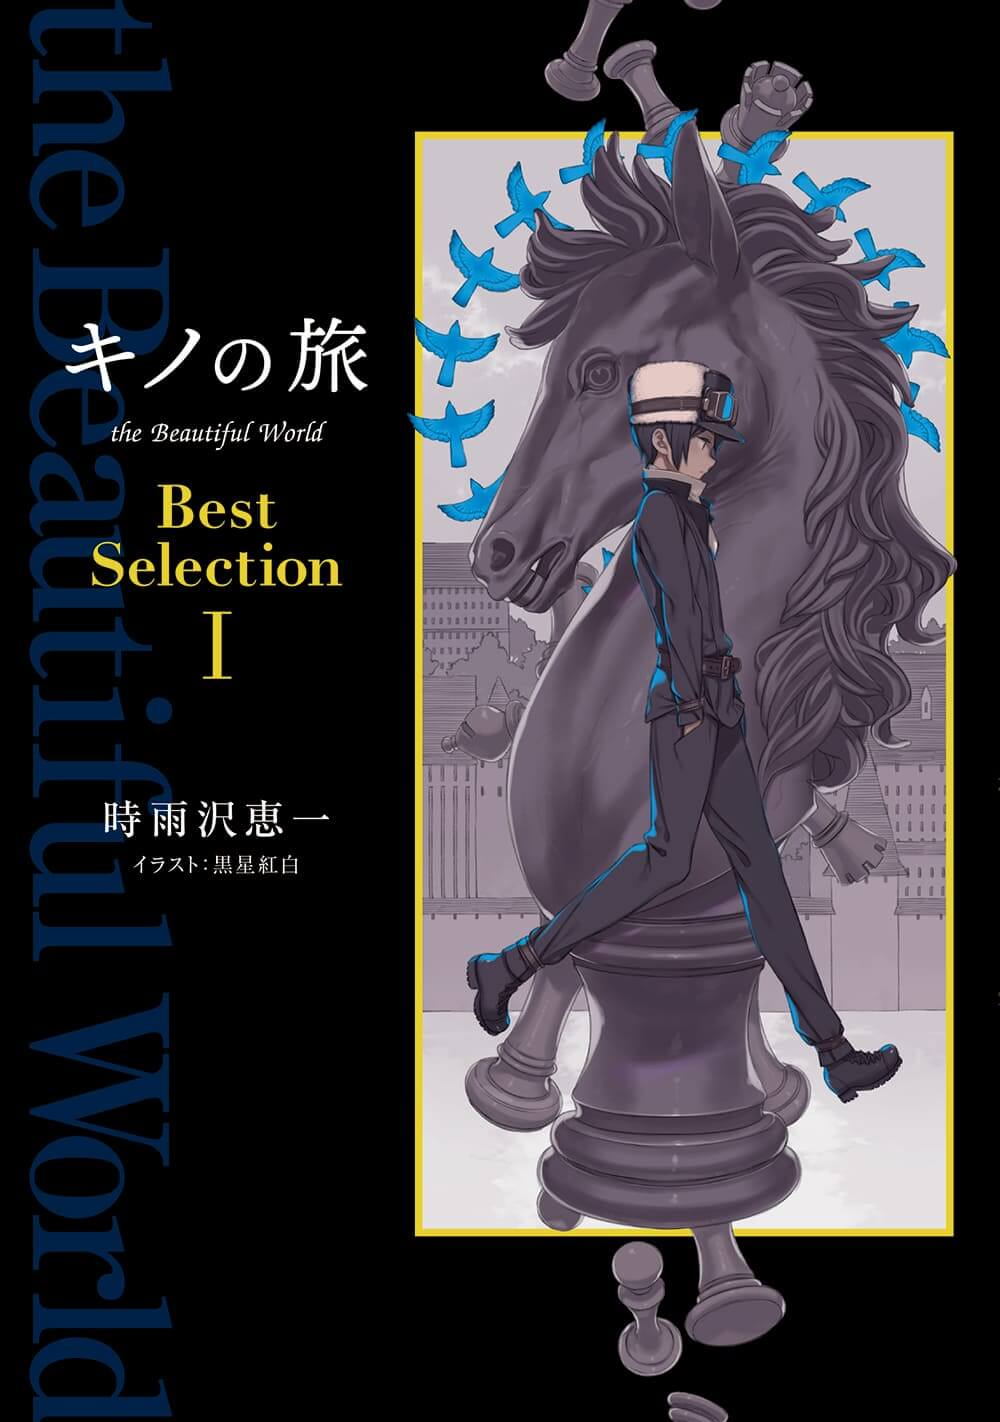 キノの旅 the Beautiful World Best Selection I